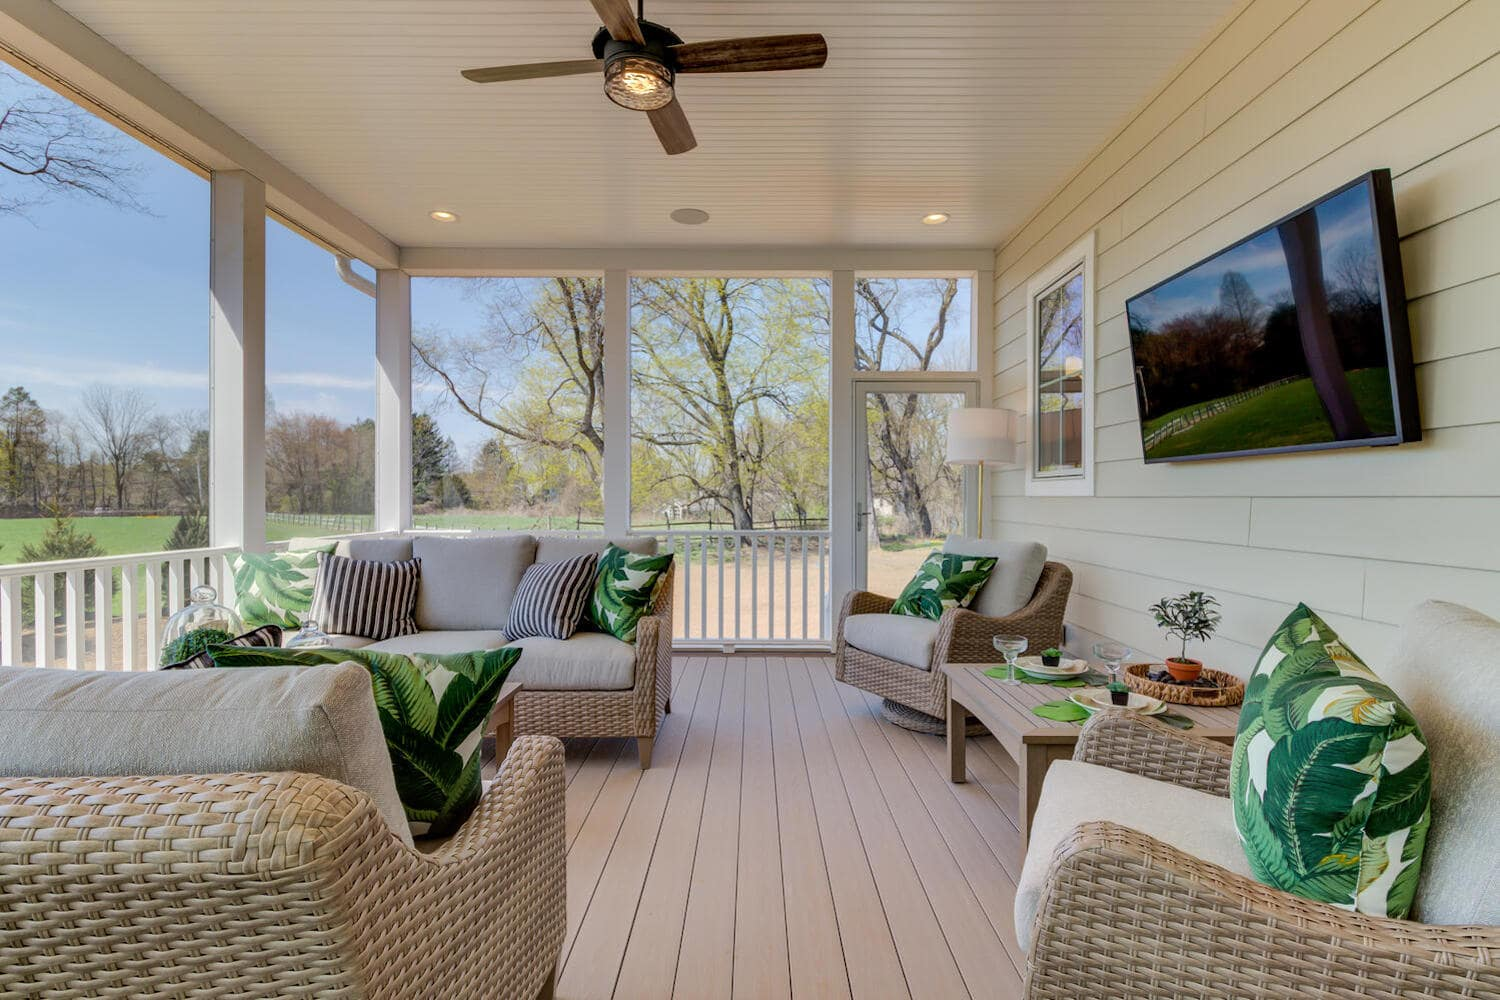 New furnished patio from Bentley Homes.